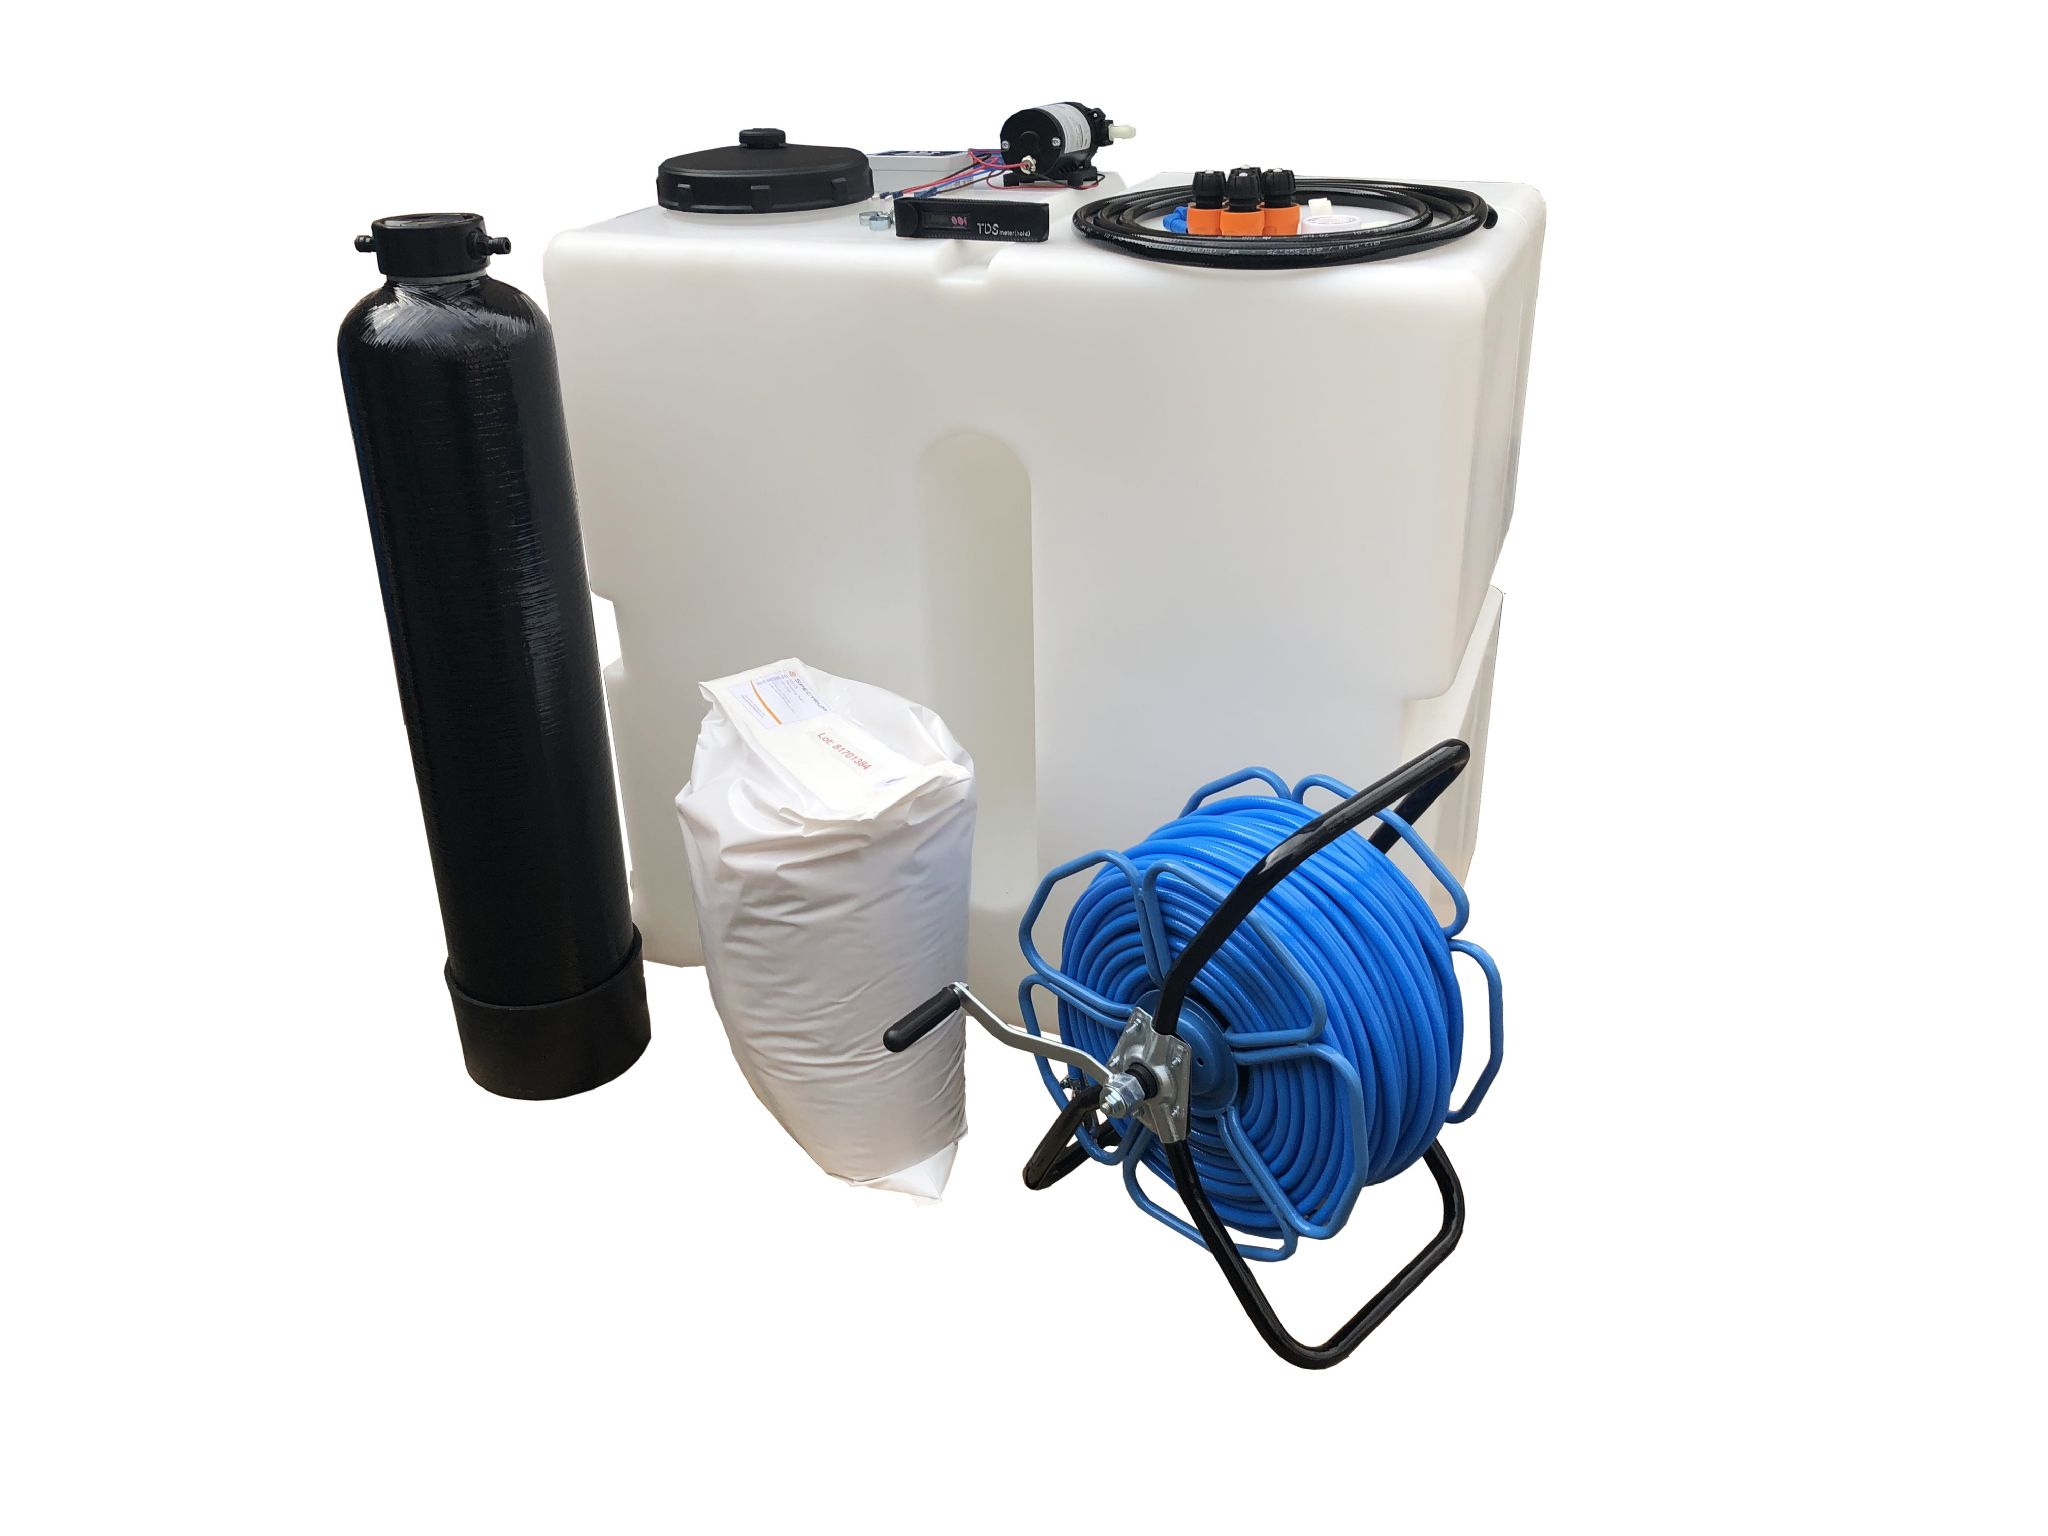 Build Your Own Di Waterfed Pole Kit